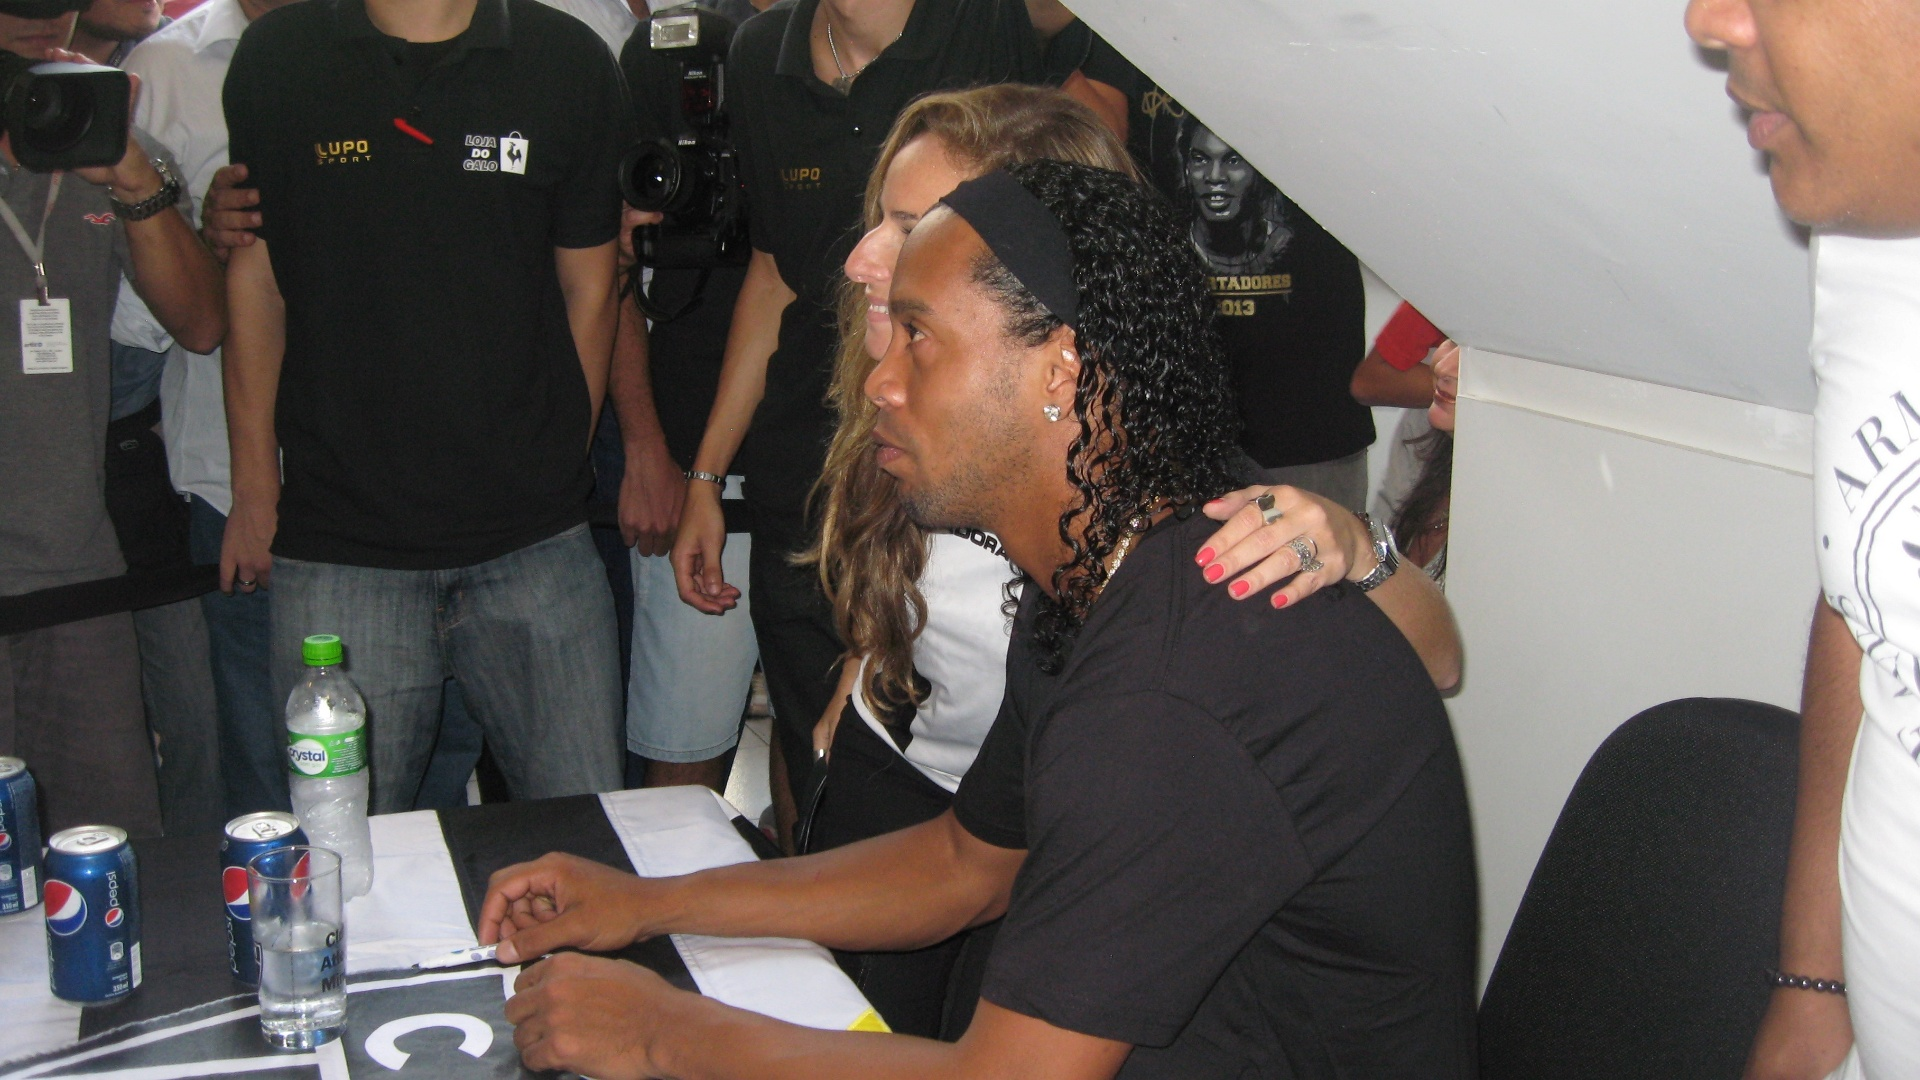 29/04/2013 - Ronaldinho Gacho posou para fotos com torcedores e fs em BH